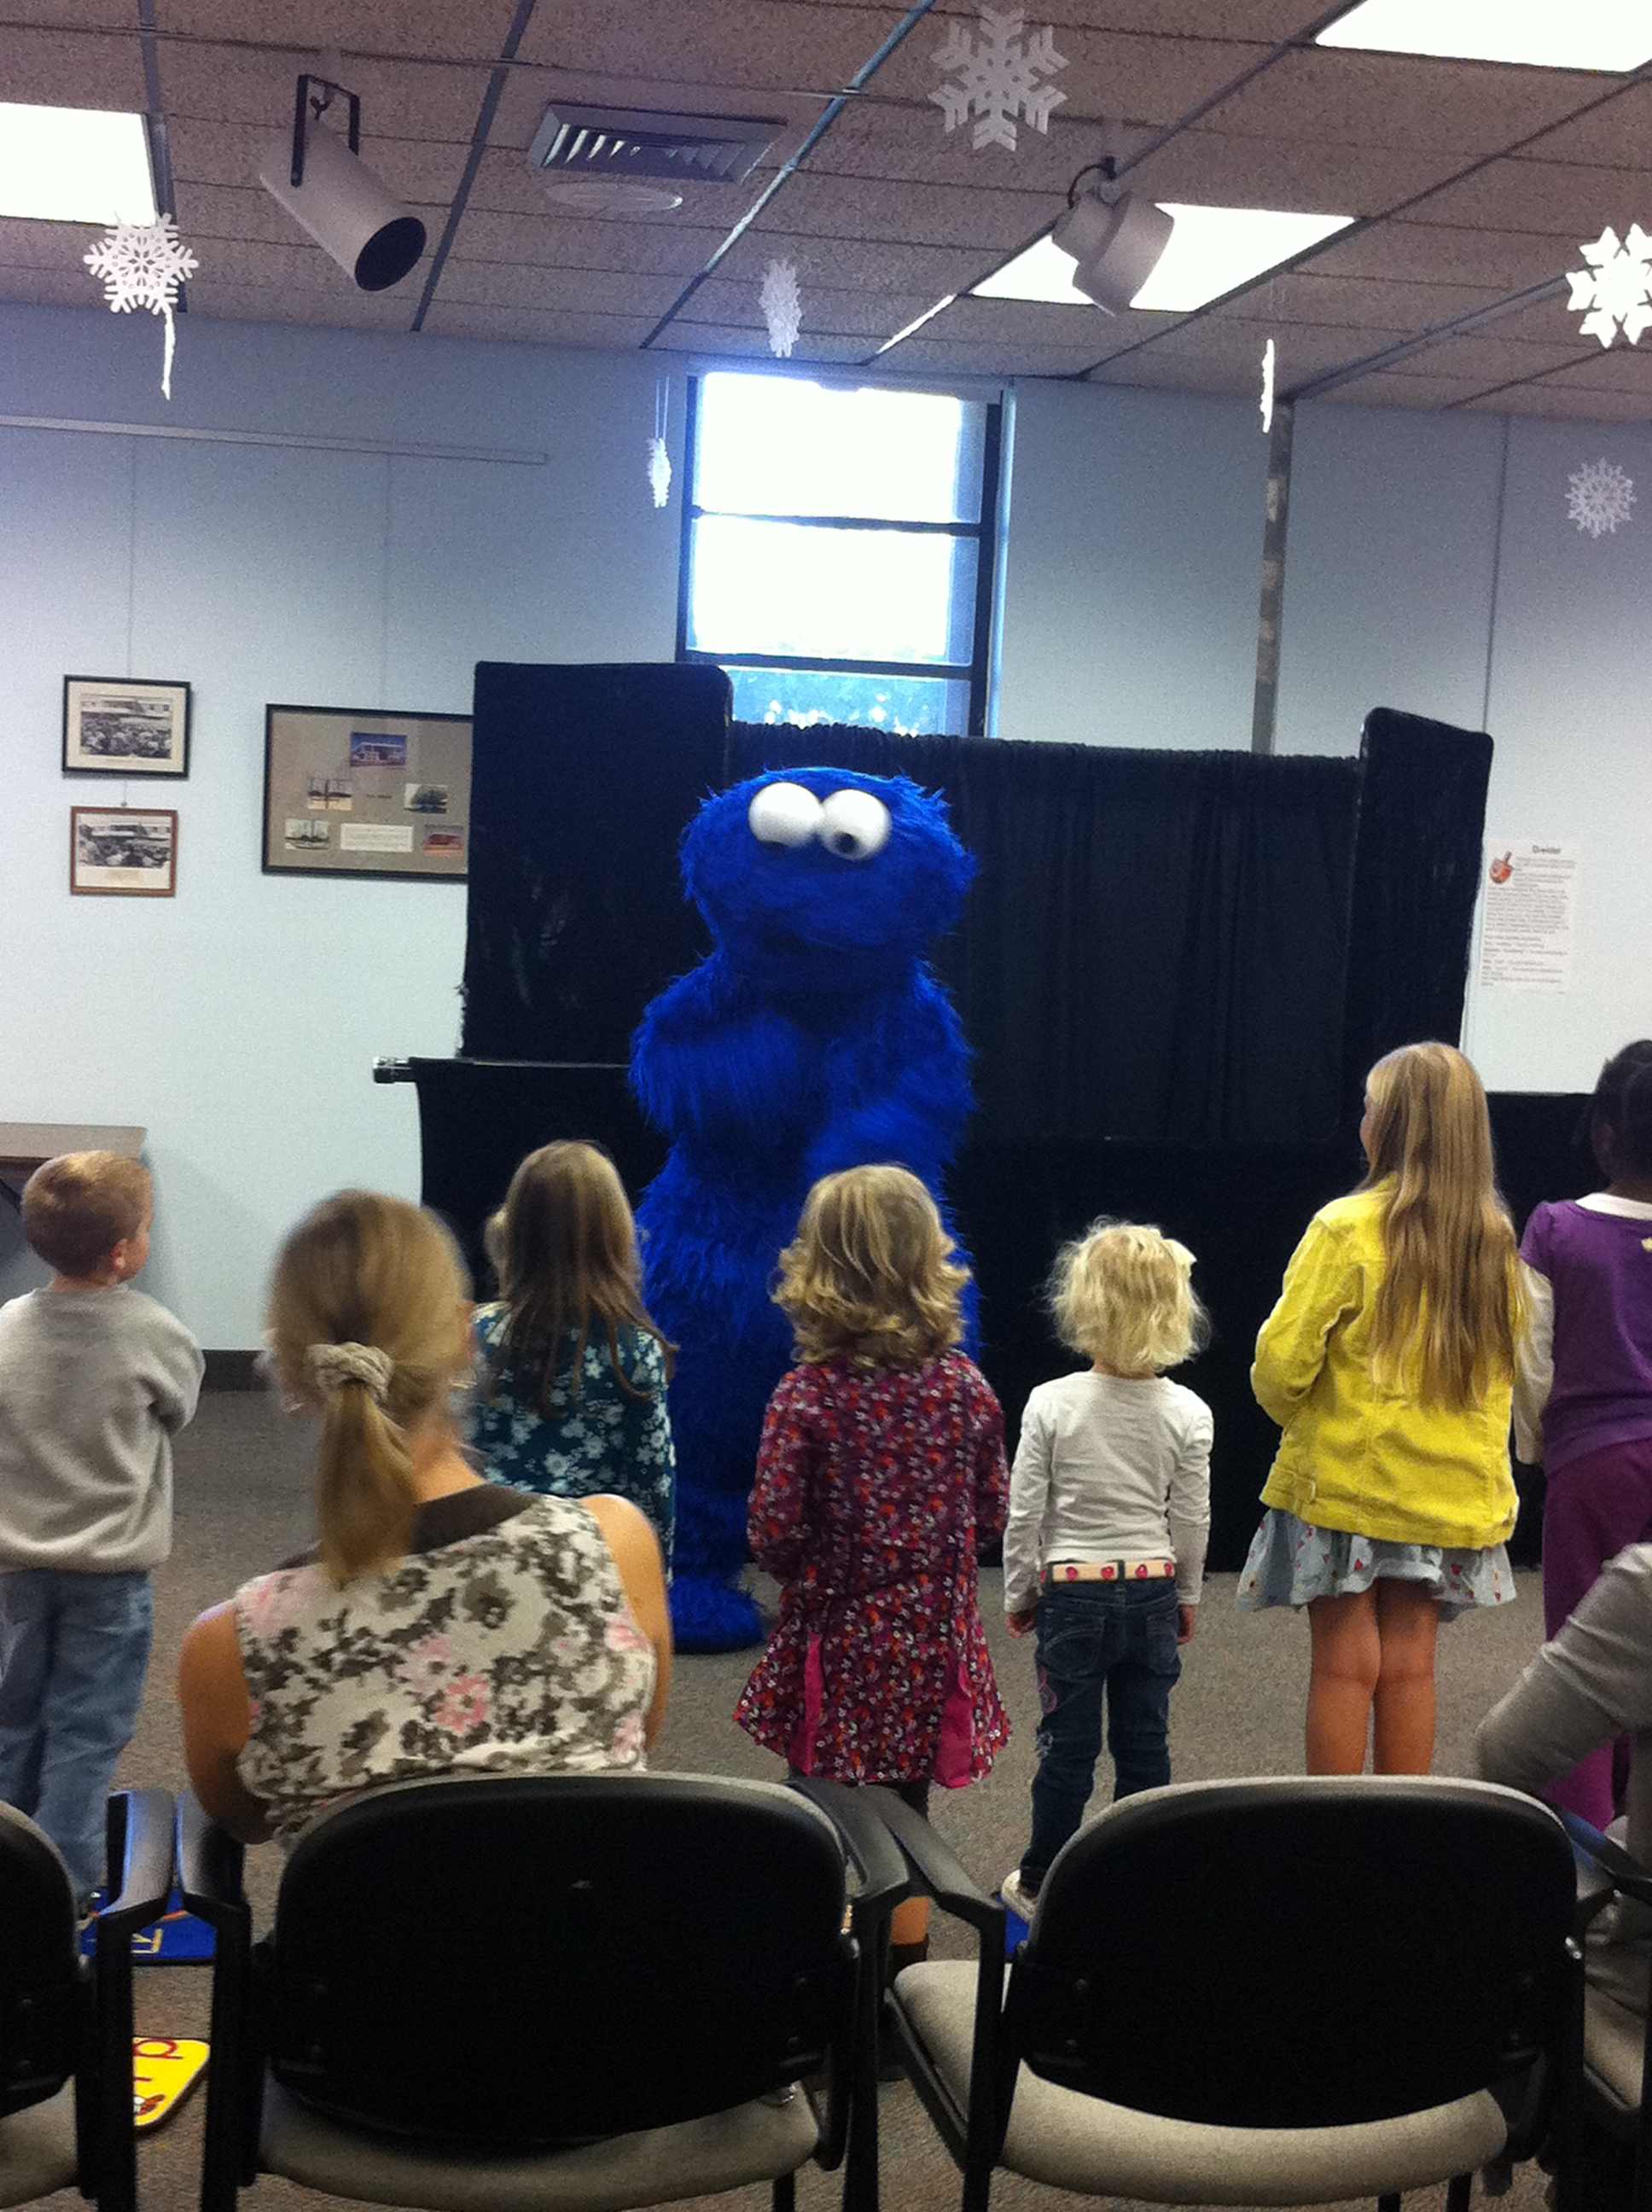 A large, fuzzy creature talks to the children at the event